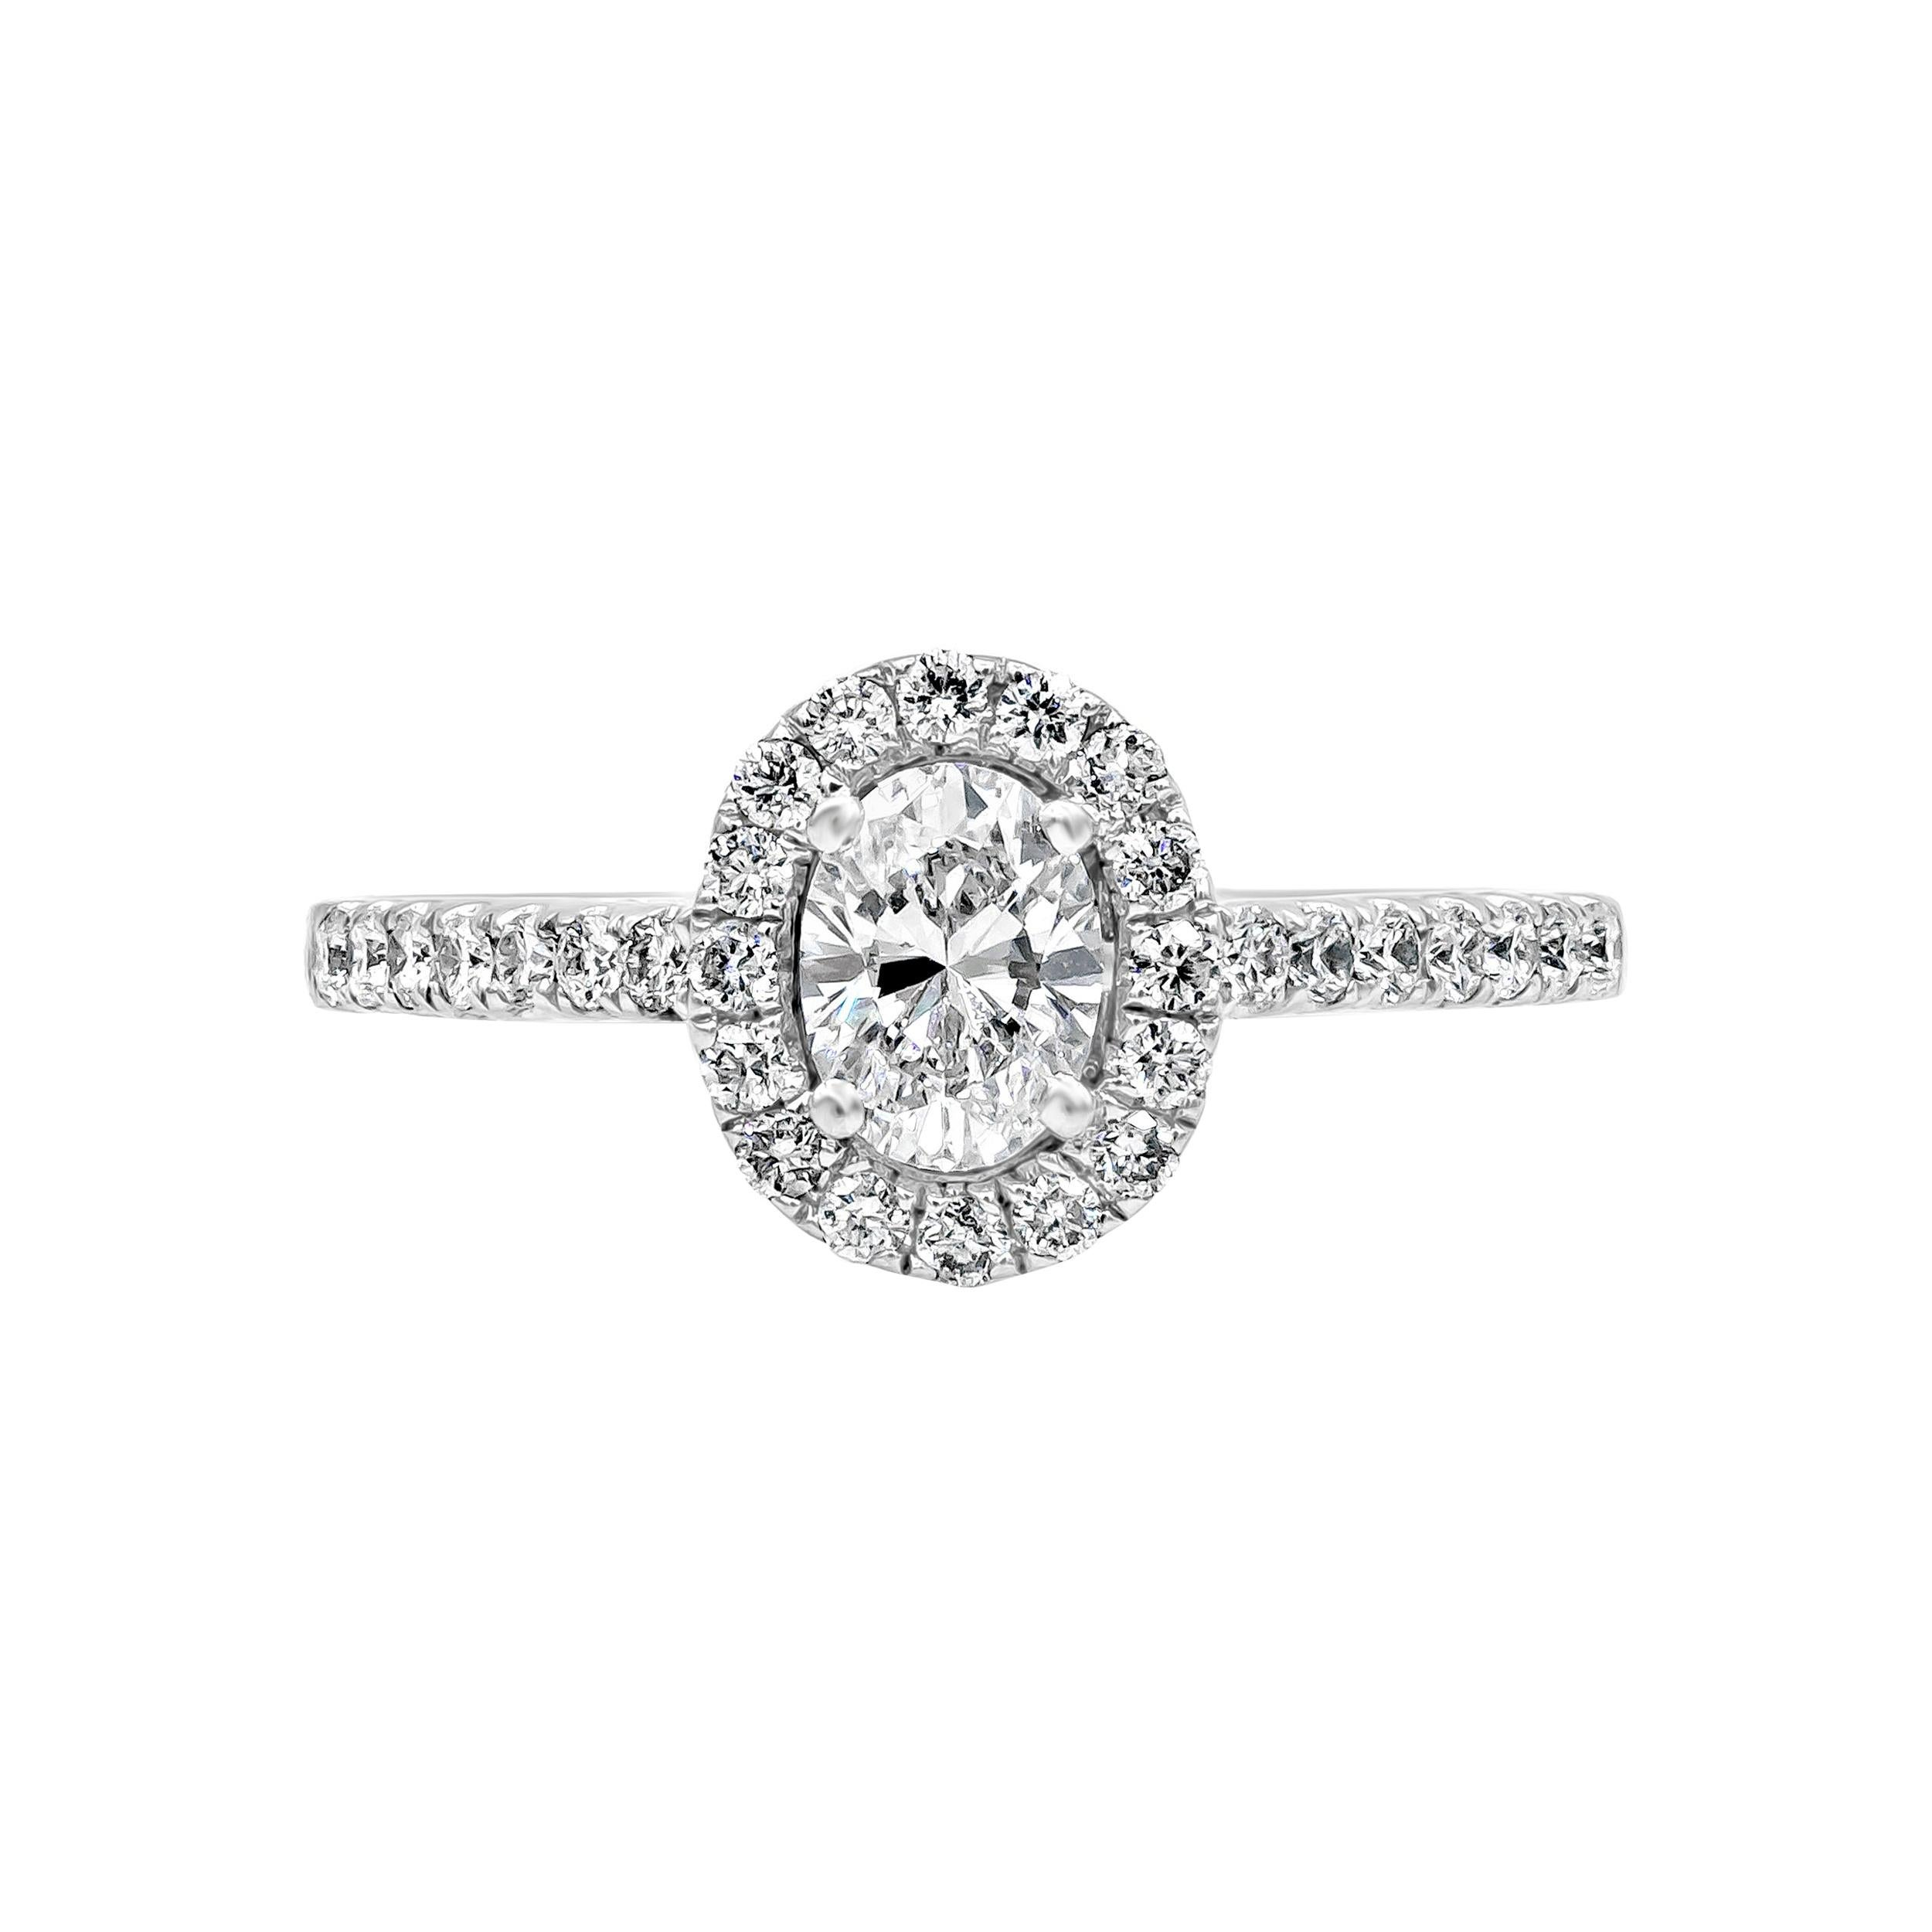 Roman Malakov, Oval Cut Diamond Halo Engagement Ring